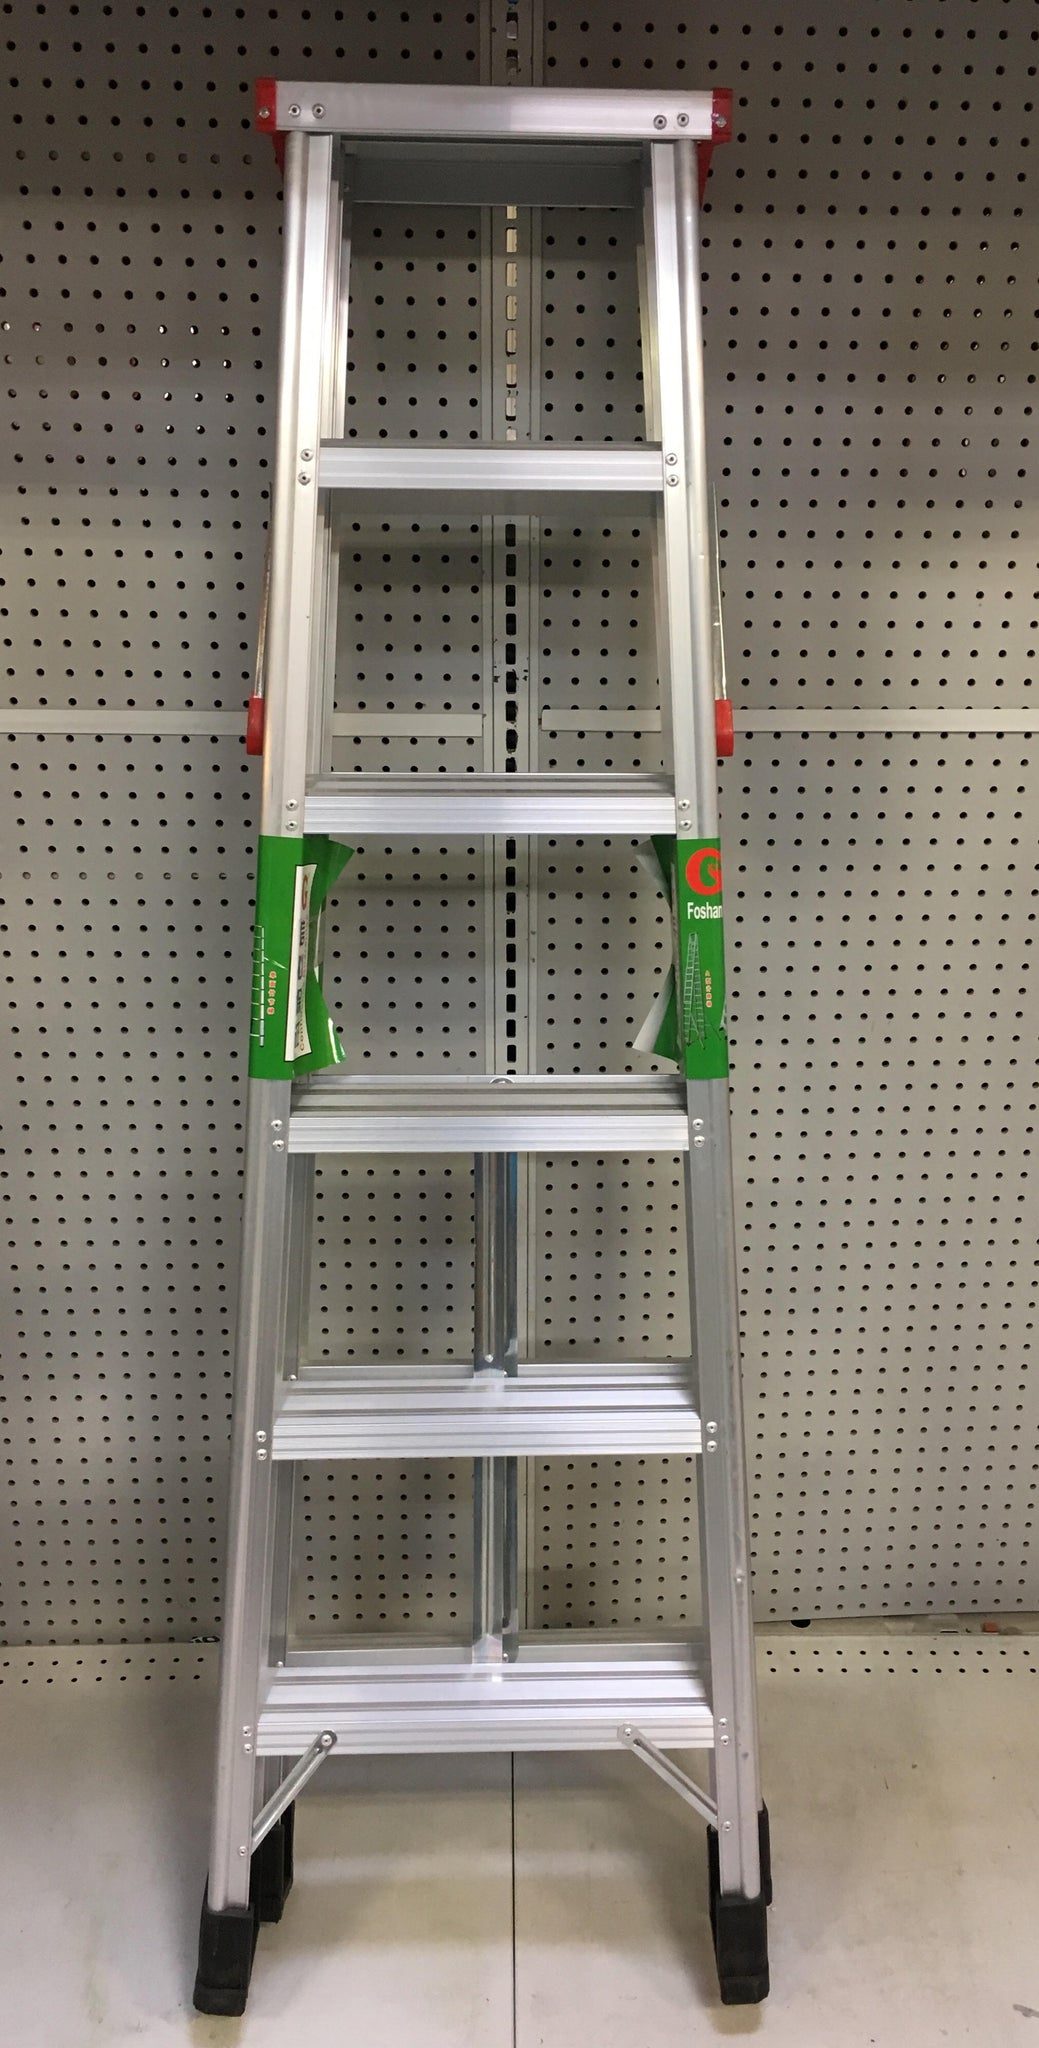 6 STEP THICK TYPE LADDER SC0778 $49.99 ### - Home Idol Home Improvement Outlet